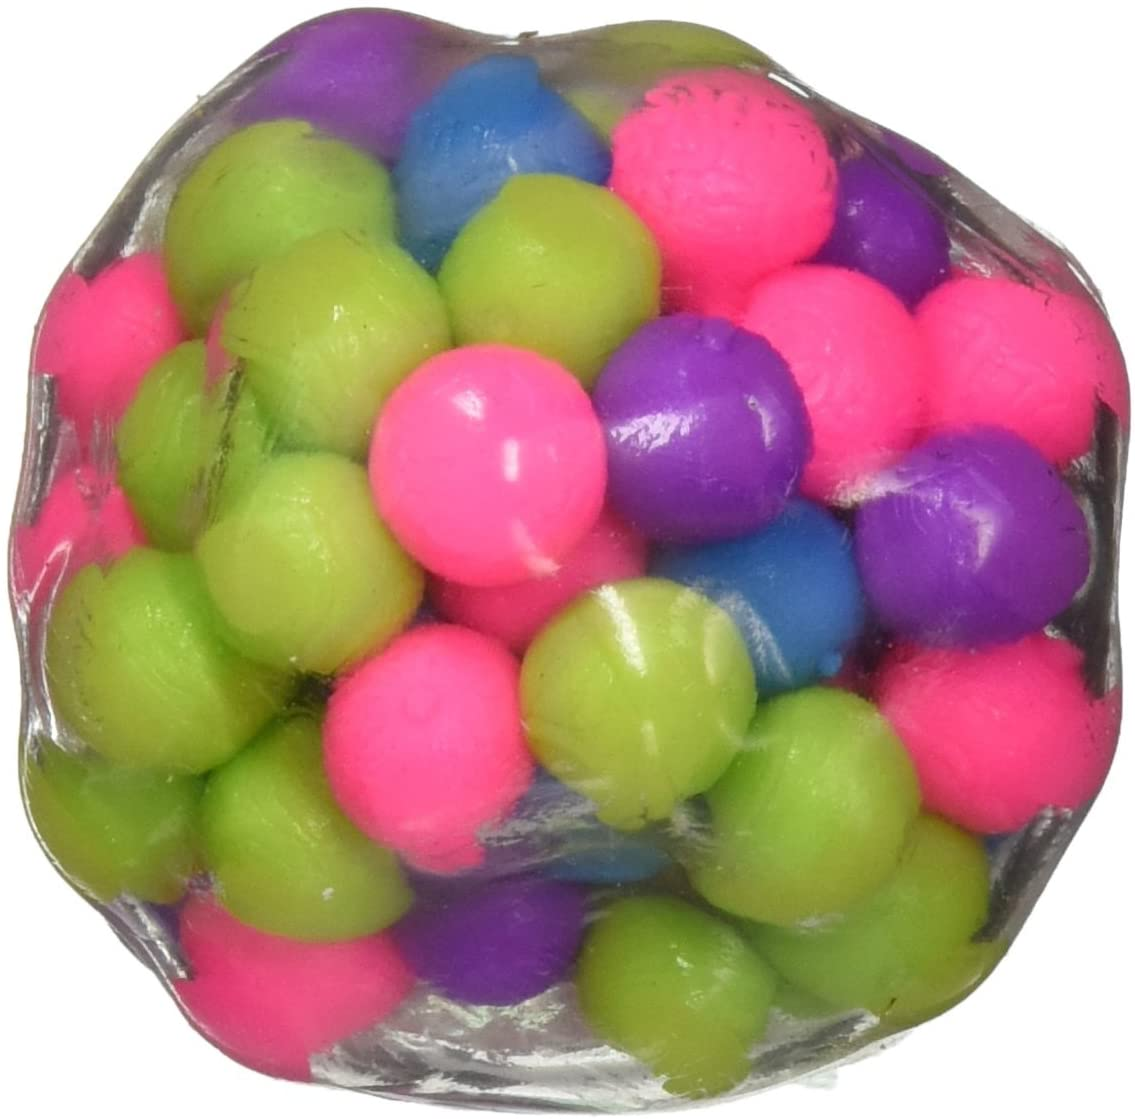 Play Visions Stress Ball - New popularity Squeeze Impr Anti-Stress service Squishy